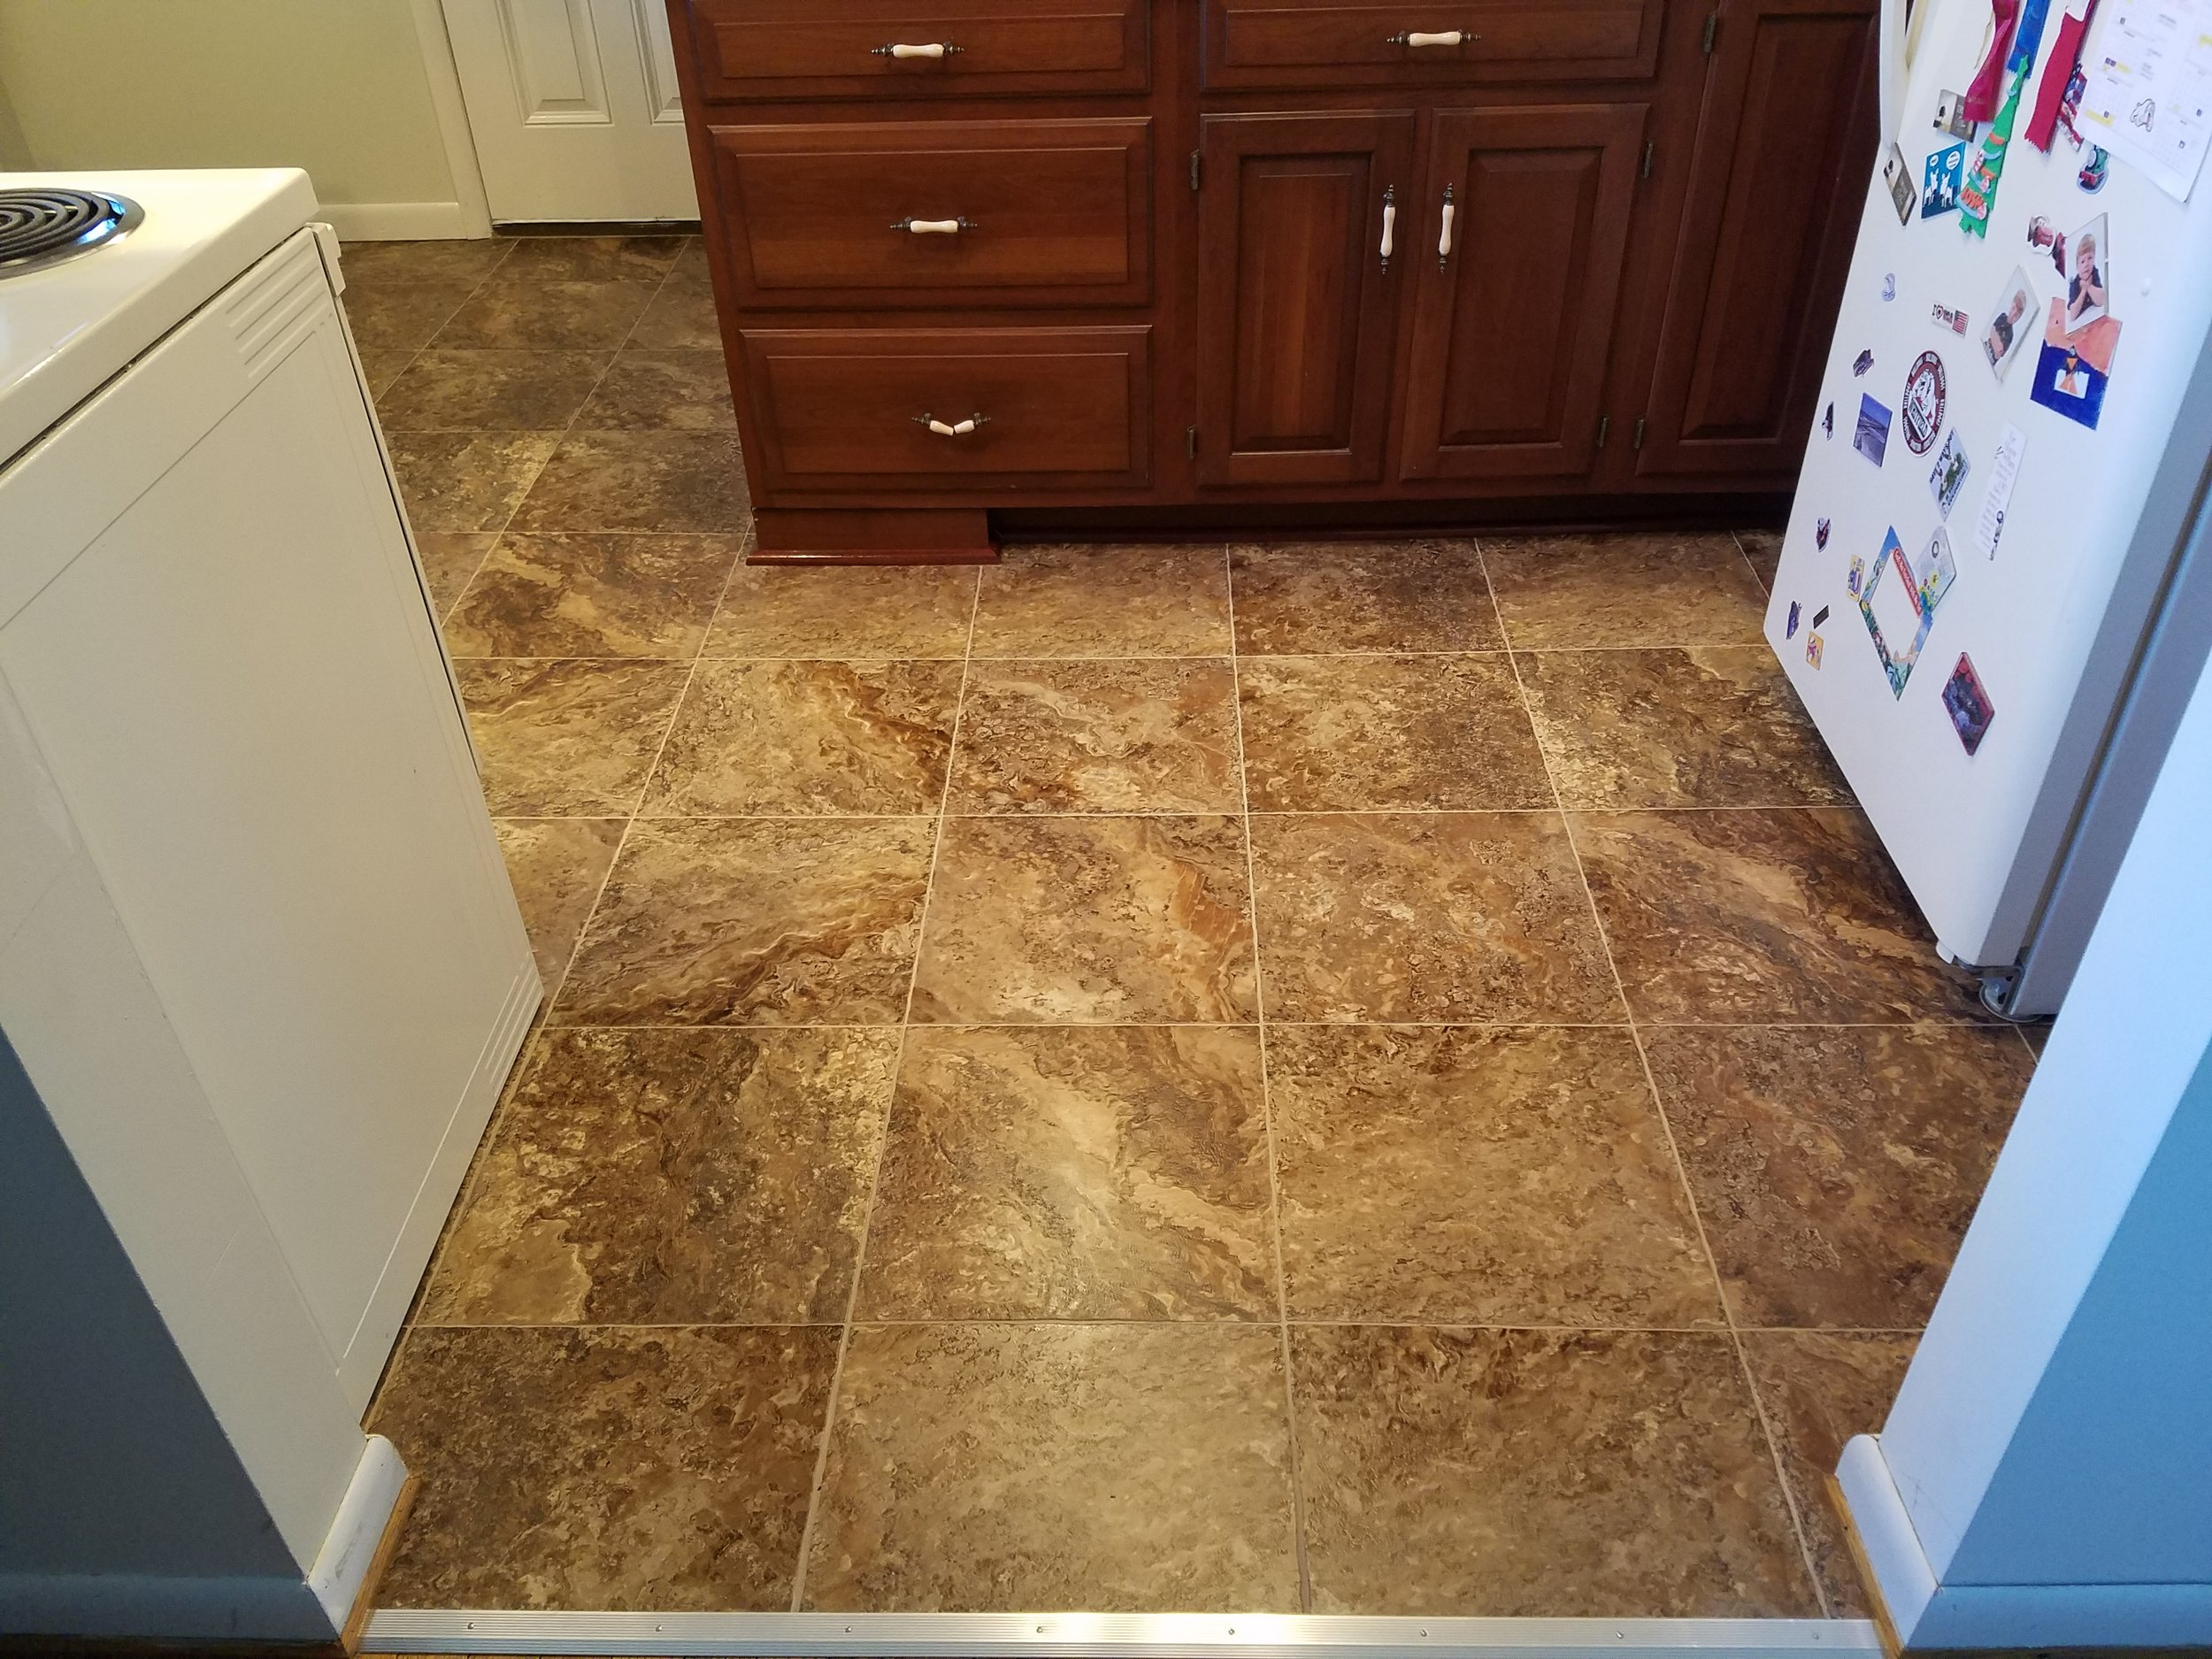 Armstrong luxury vinyl tile with grout installed in a kitchen. Vinyl tile gives the look of ceramic or porcelain tile but with a softer and warmer feel. Products such as this are also more budget friendly then standard tile.